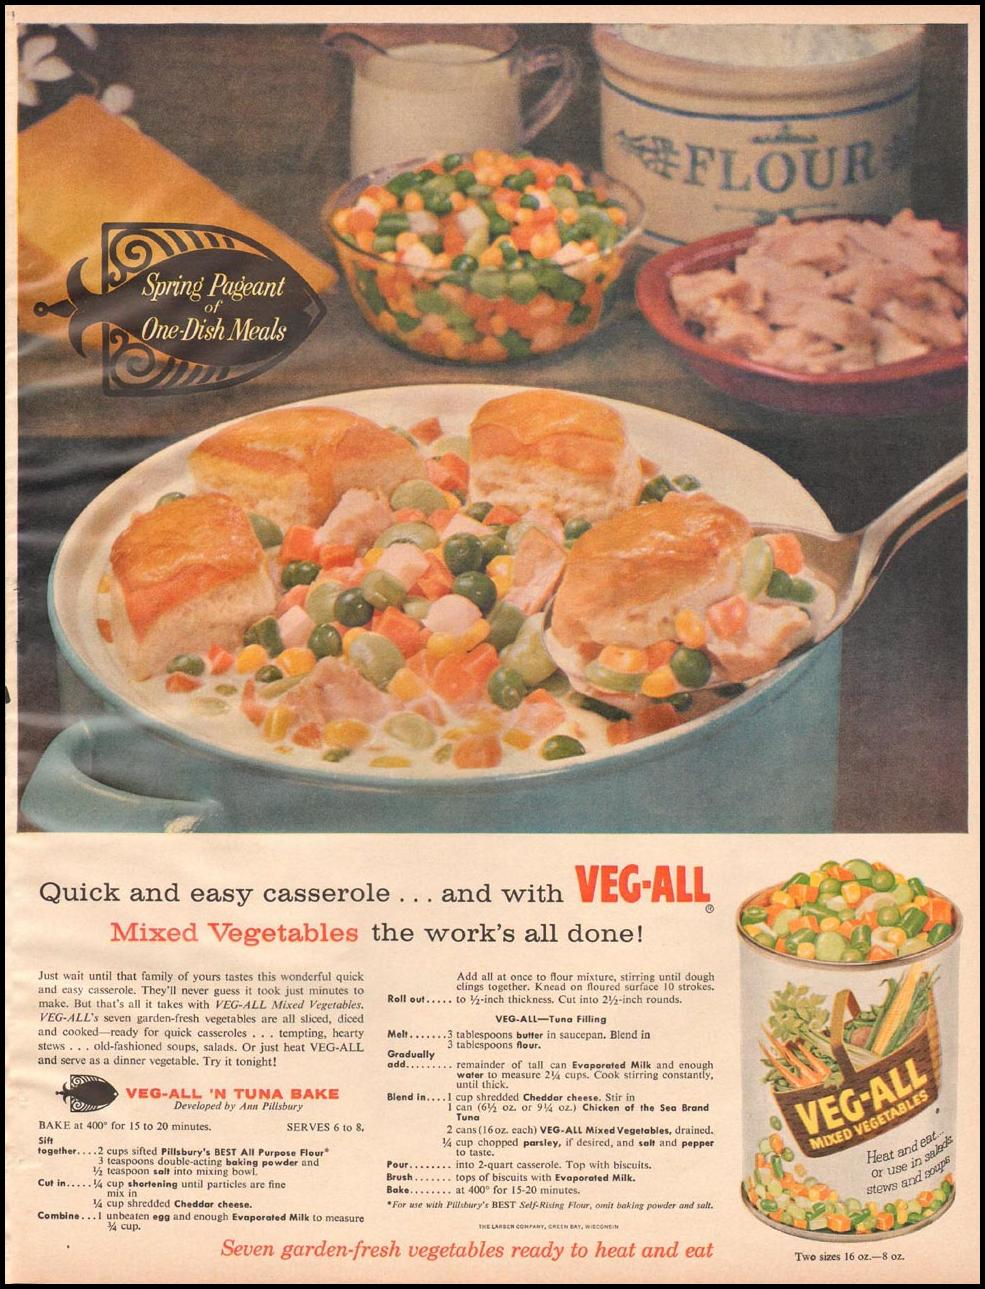 VEG-ALL MIXED VEGETABLES BETTER HOMES AND GARDENS 03/01/1960 p. 115